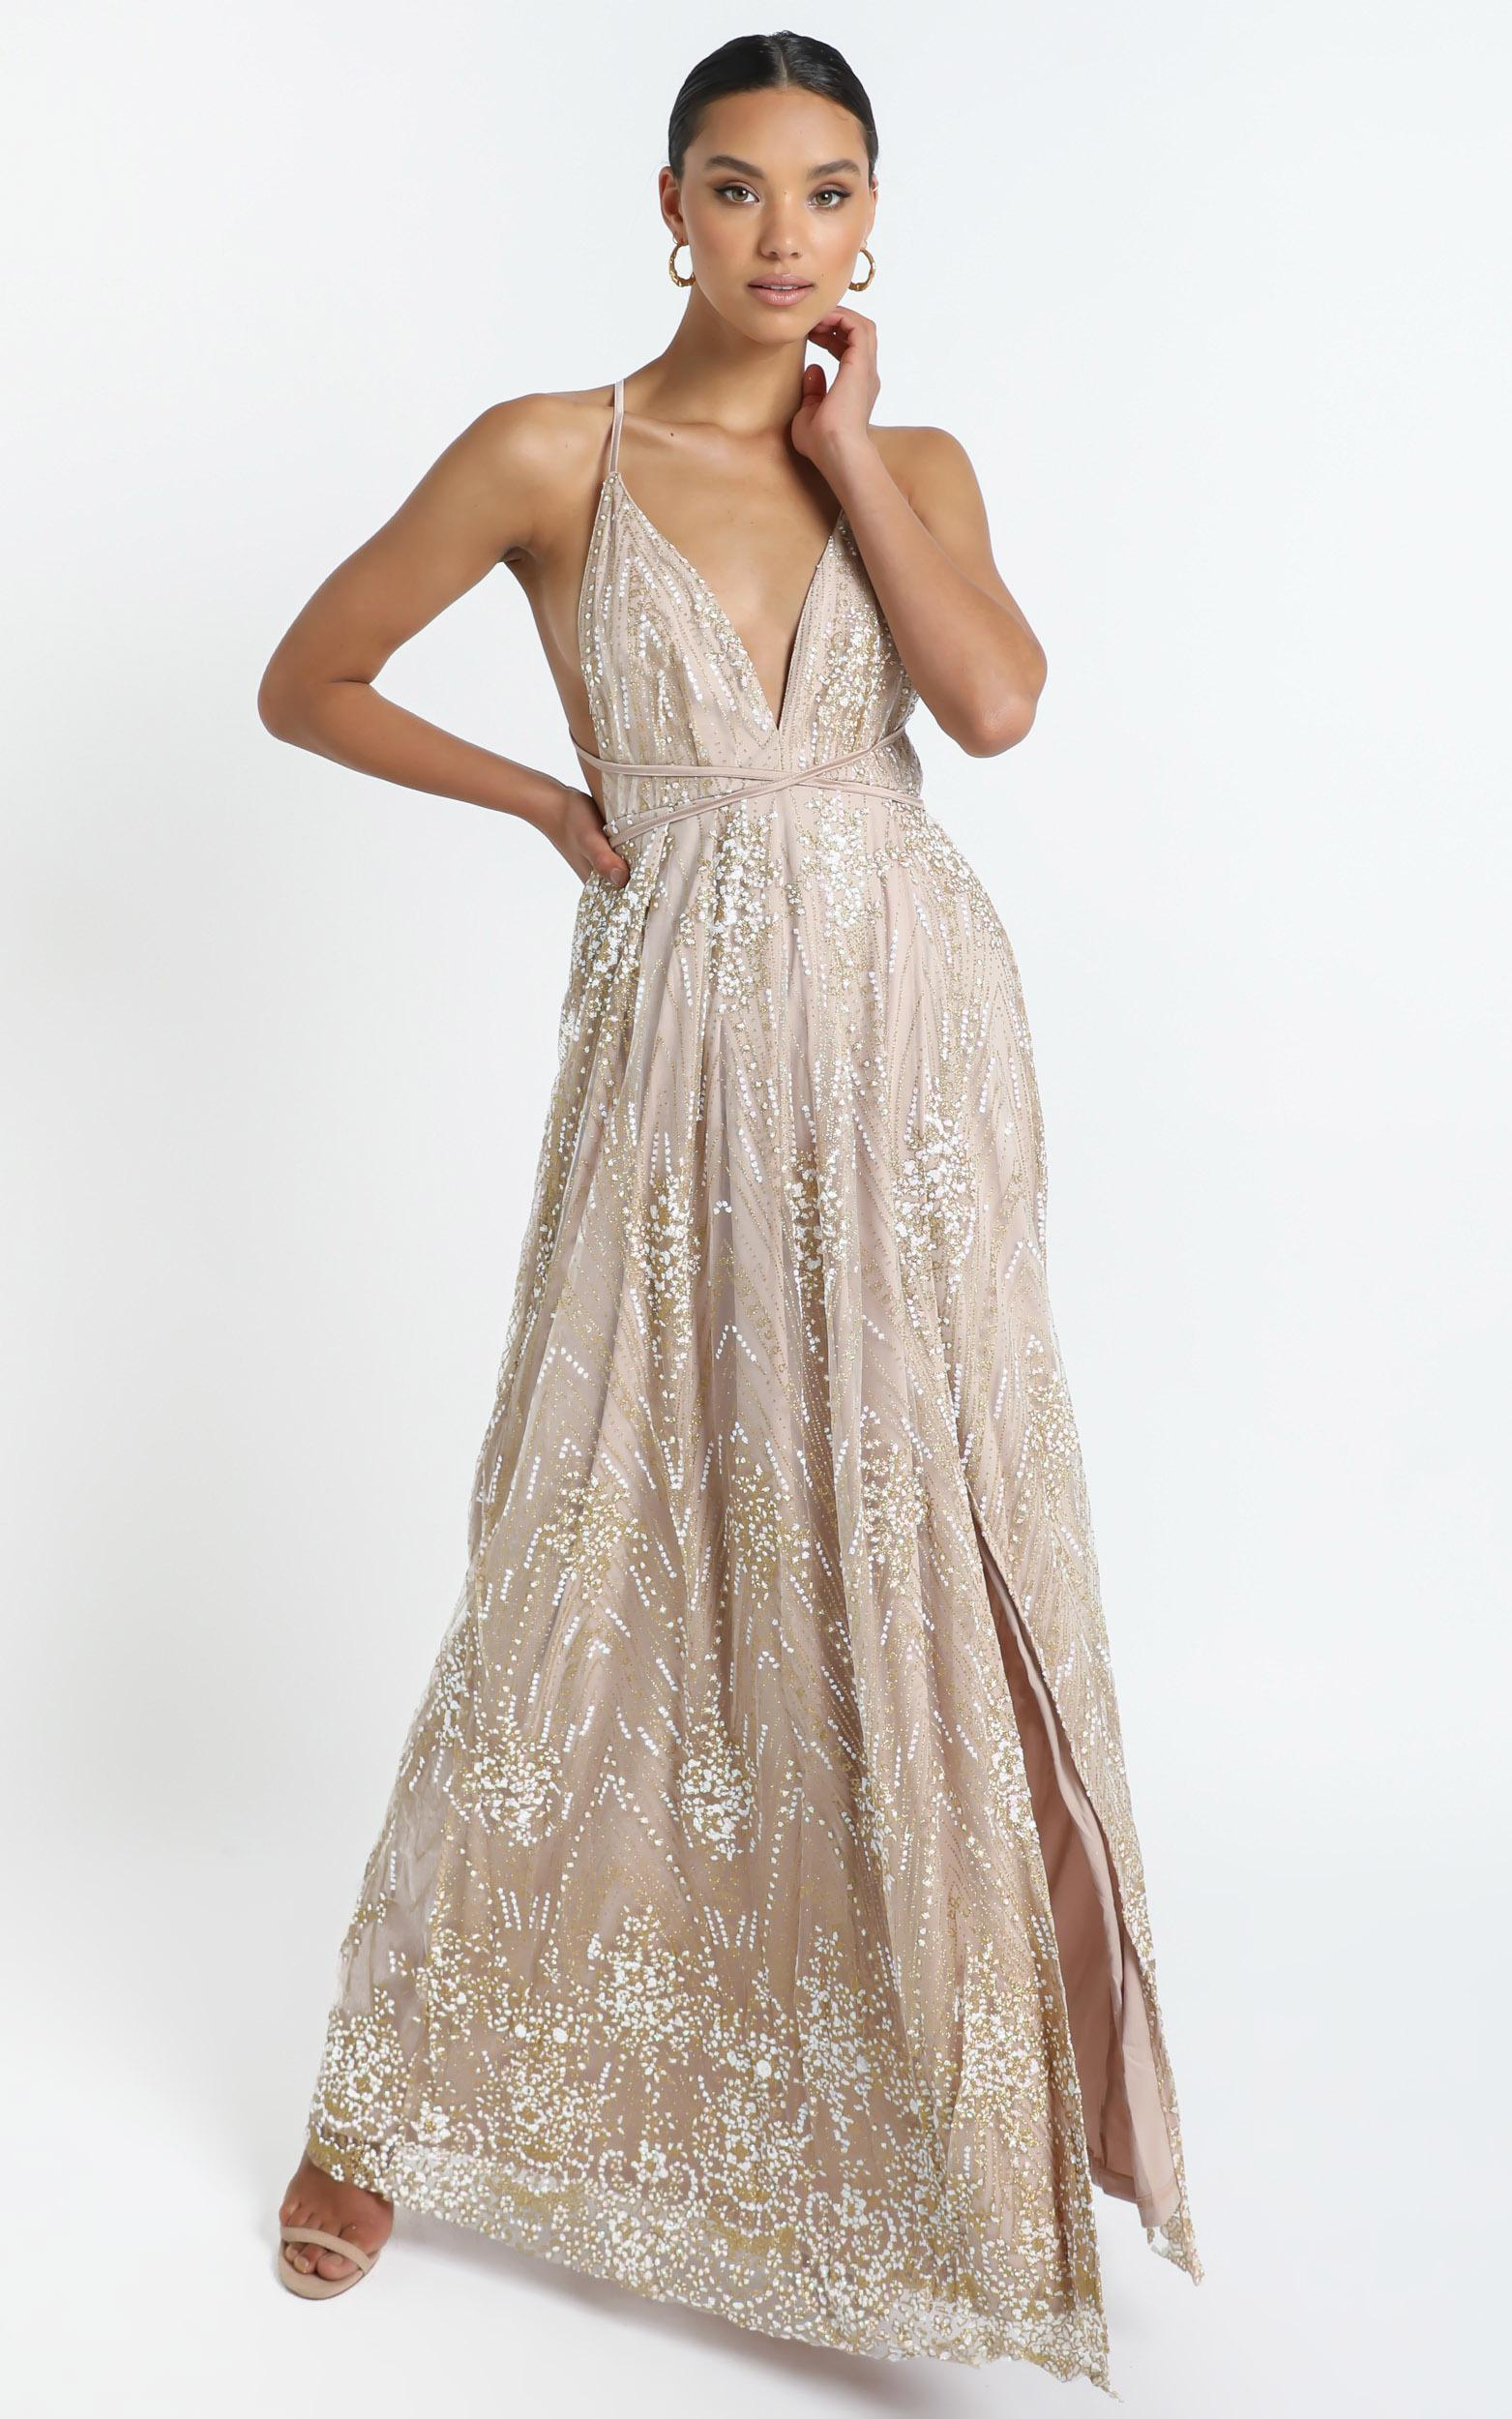 New York Nights Maxi Dress In Gold - 16 (XXL), Gold, hi-res image number null